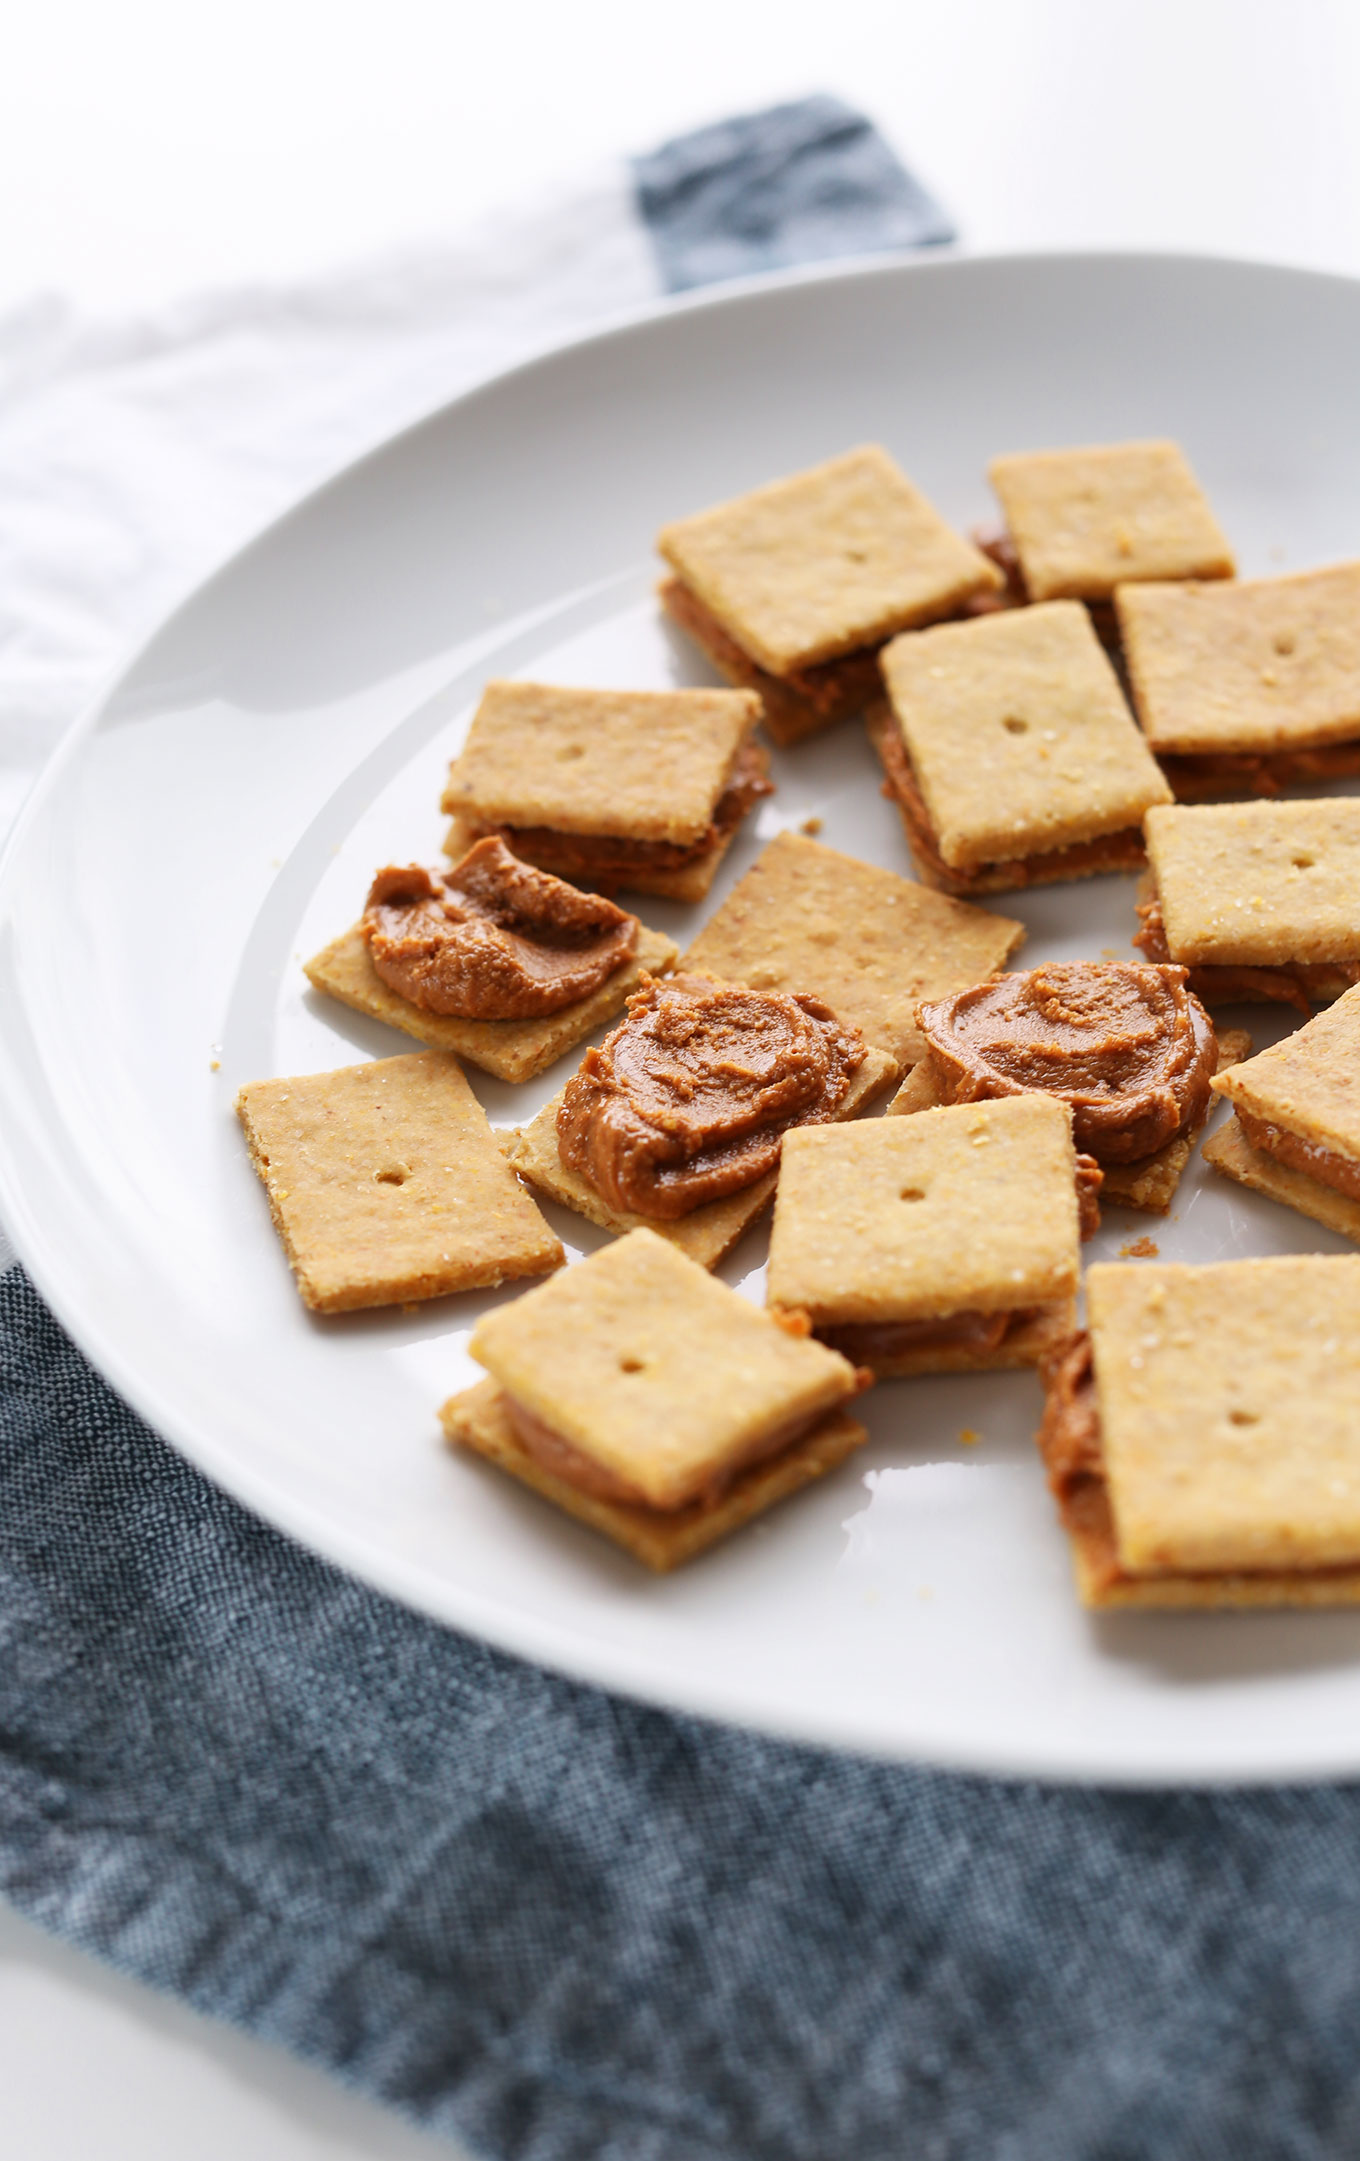 Plate of delicious Peanut Butter Cheese Crackers for a vegan GF snack